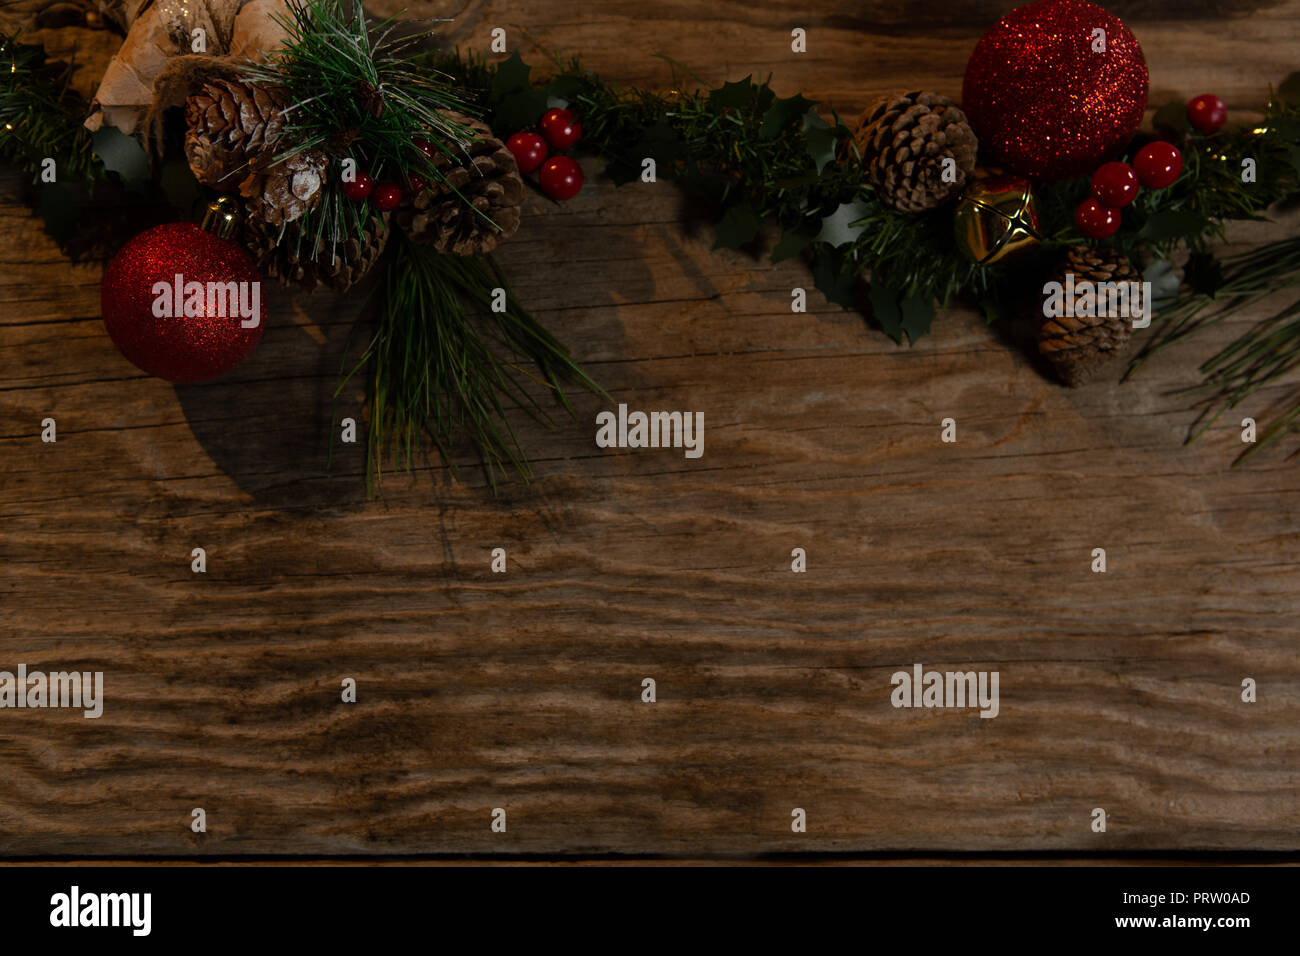 Copy Space With Rustic Christmas Garland Stock Photo 221210597 Alamy